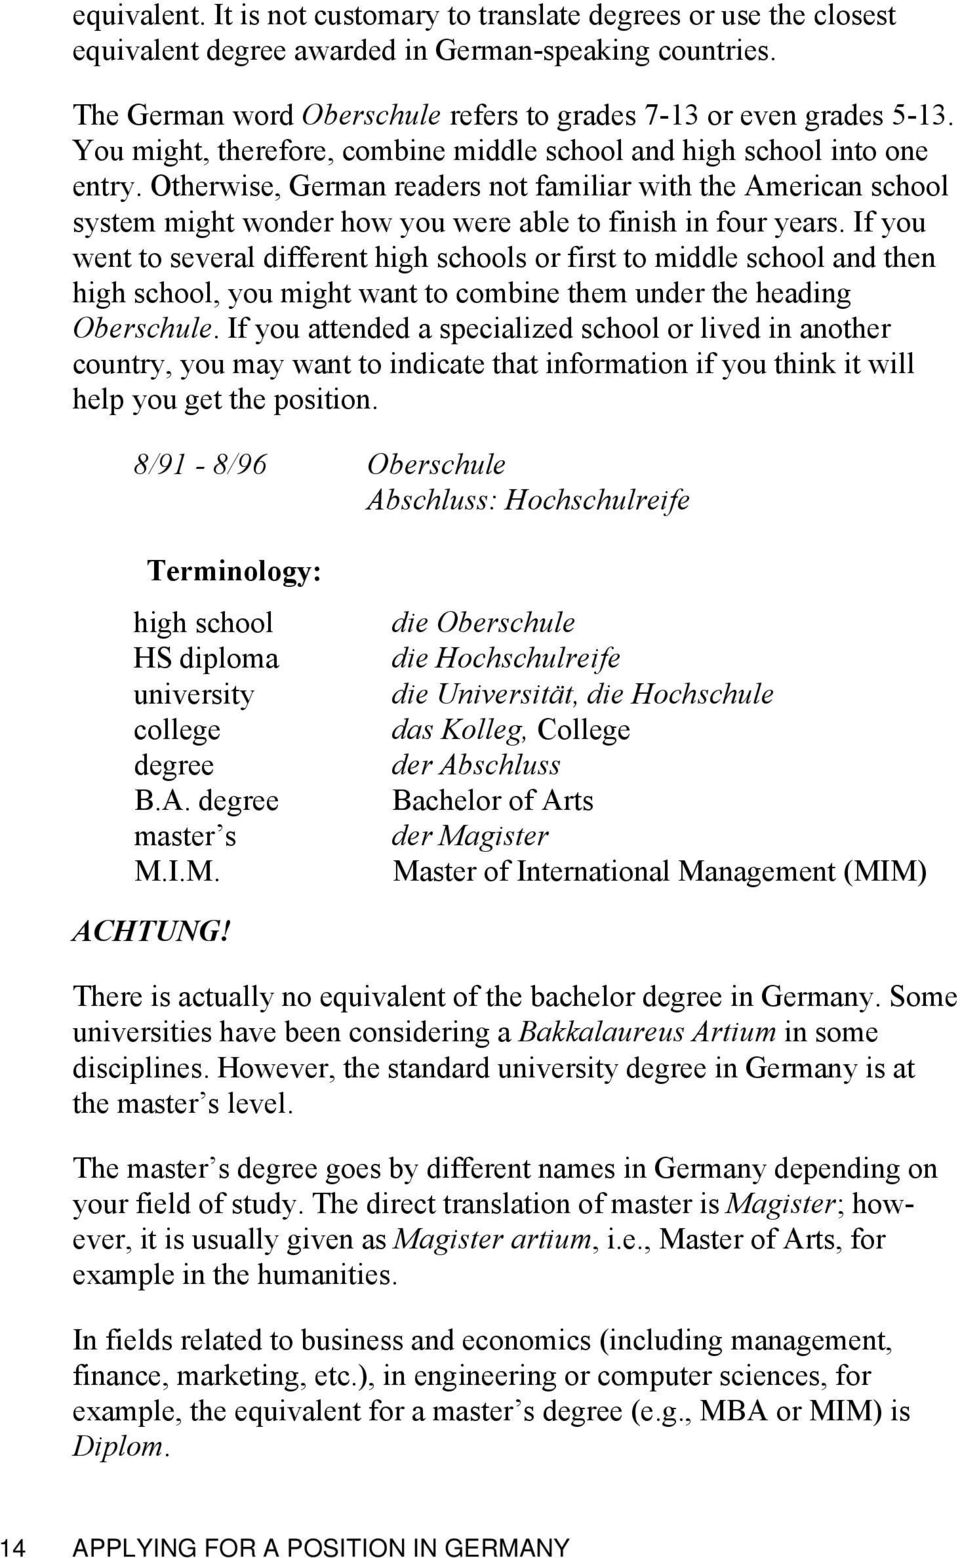 If you went to several different high schools or first to middle school and then high school, you might want to combine them un the heading Oberschule.